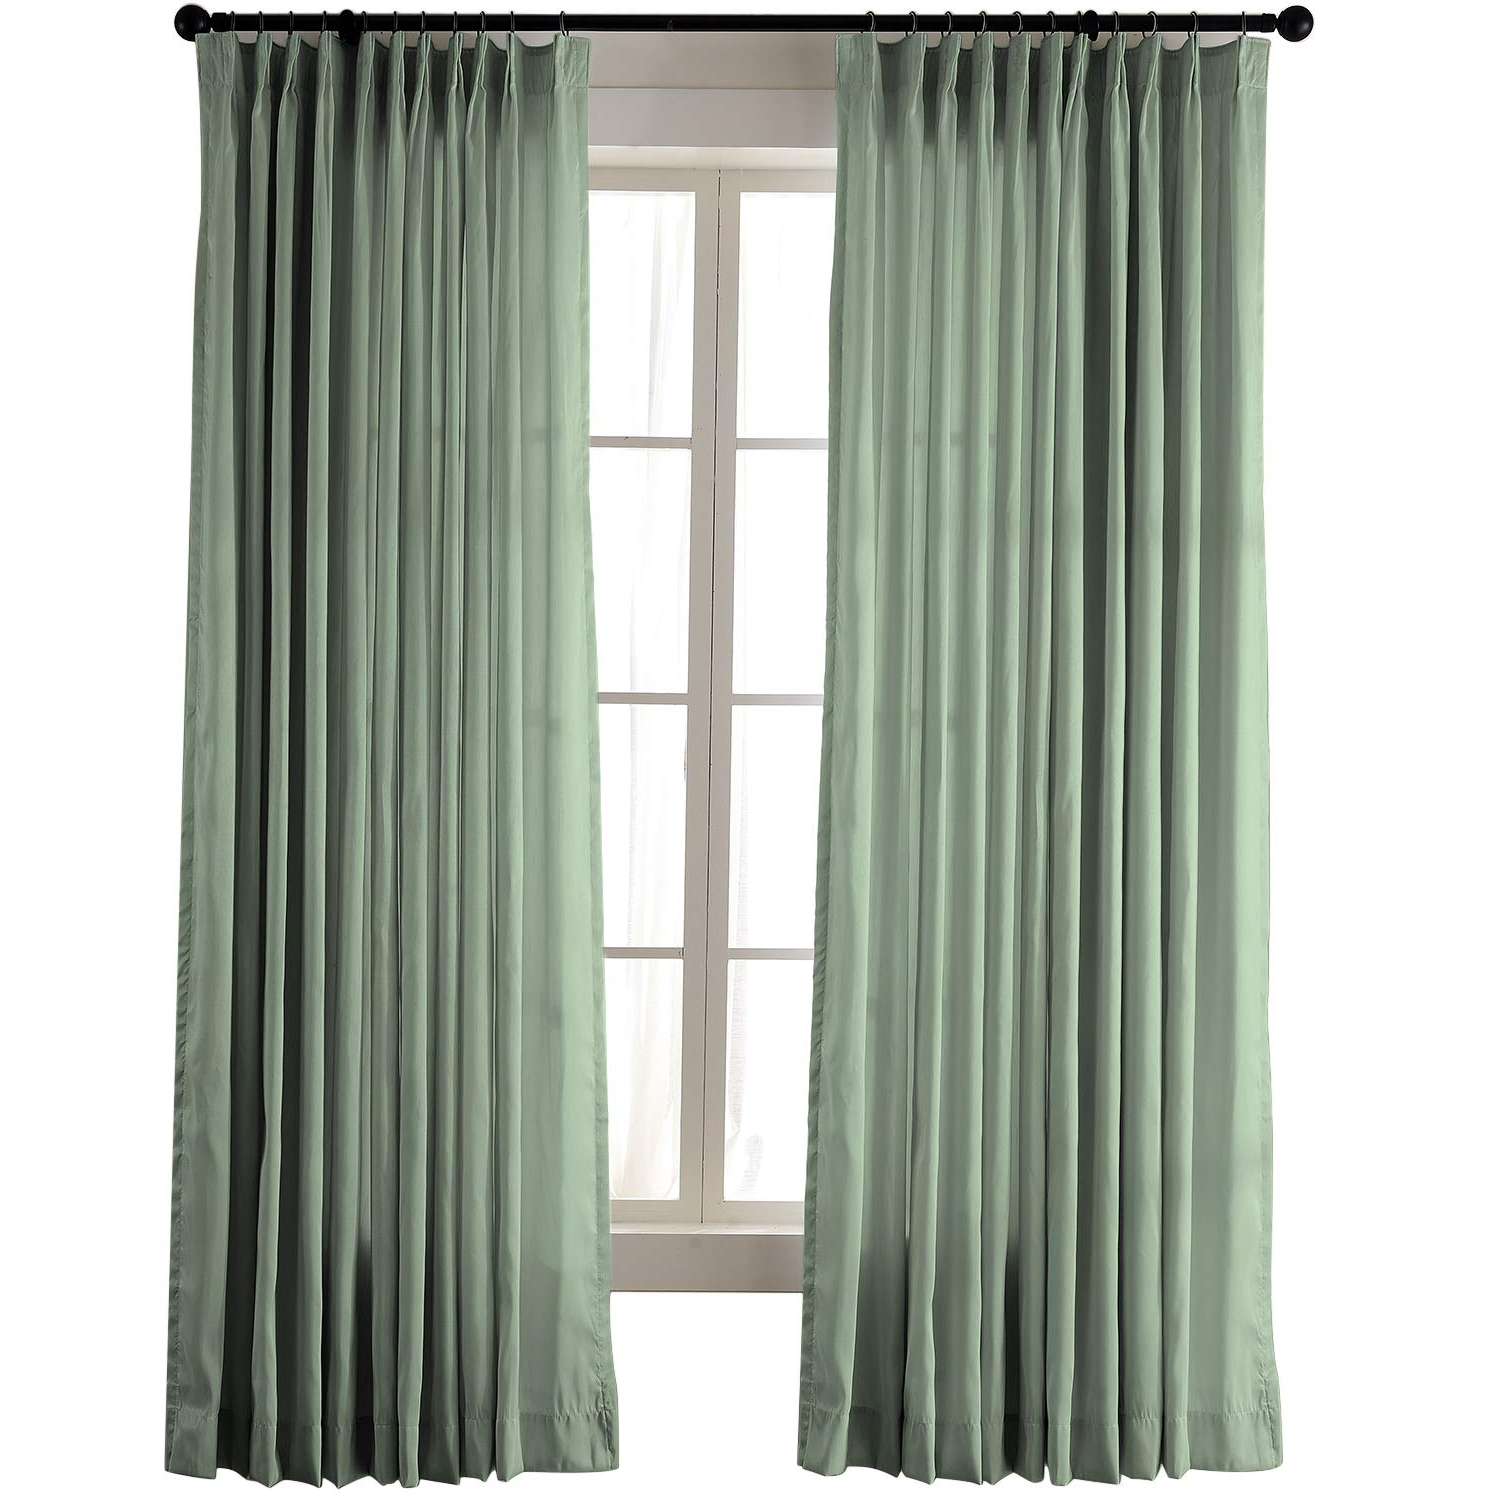 """Vintage Textured Faux Dupioni Silk Curtain Panels In Latest Chadmade Vintage Textured Faux Dupioni Silk Drape Curtain Panel Pinch Pleated 72"""" W X 72"""" L With White Blackout Lined, Green (View 8 of 20)"""